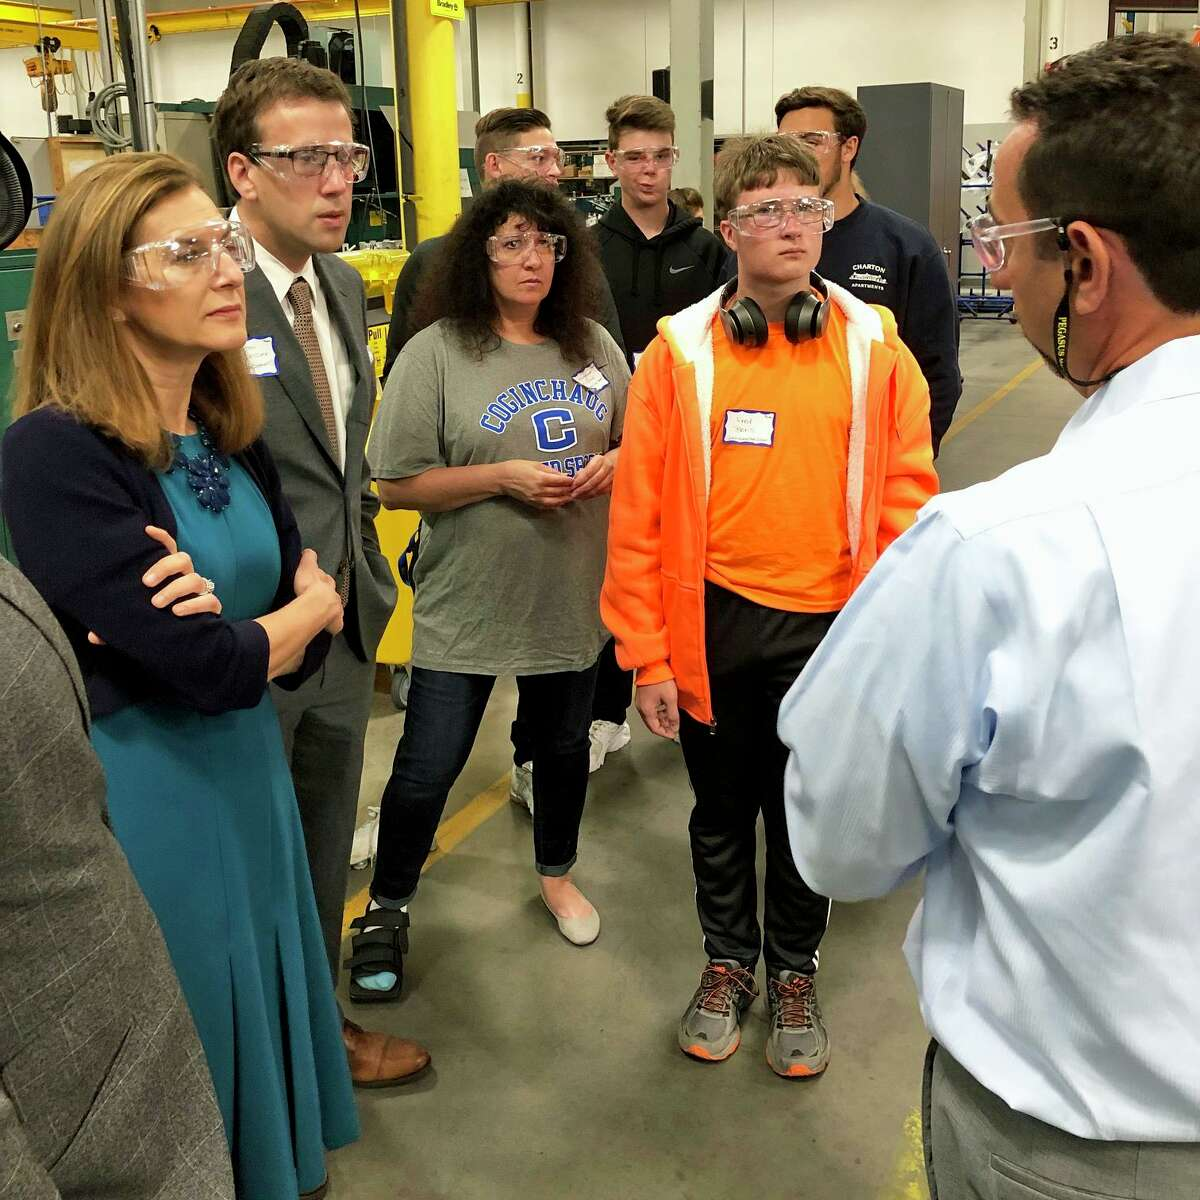 Lt. Gov. Susan Bysiewicz marked Manufacturing Month Oct. 4 by joining high school students on a tour of Pegasus Manufacturing in Middletown.